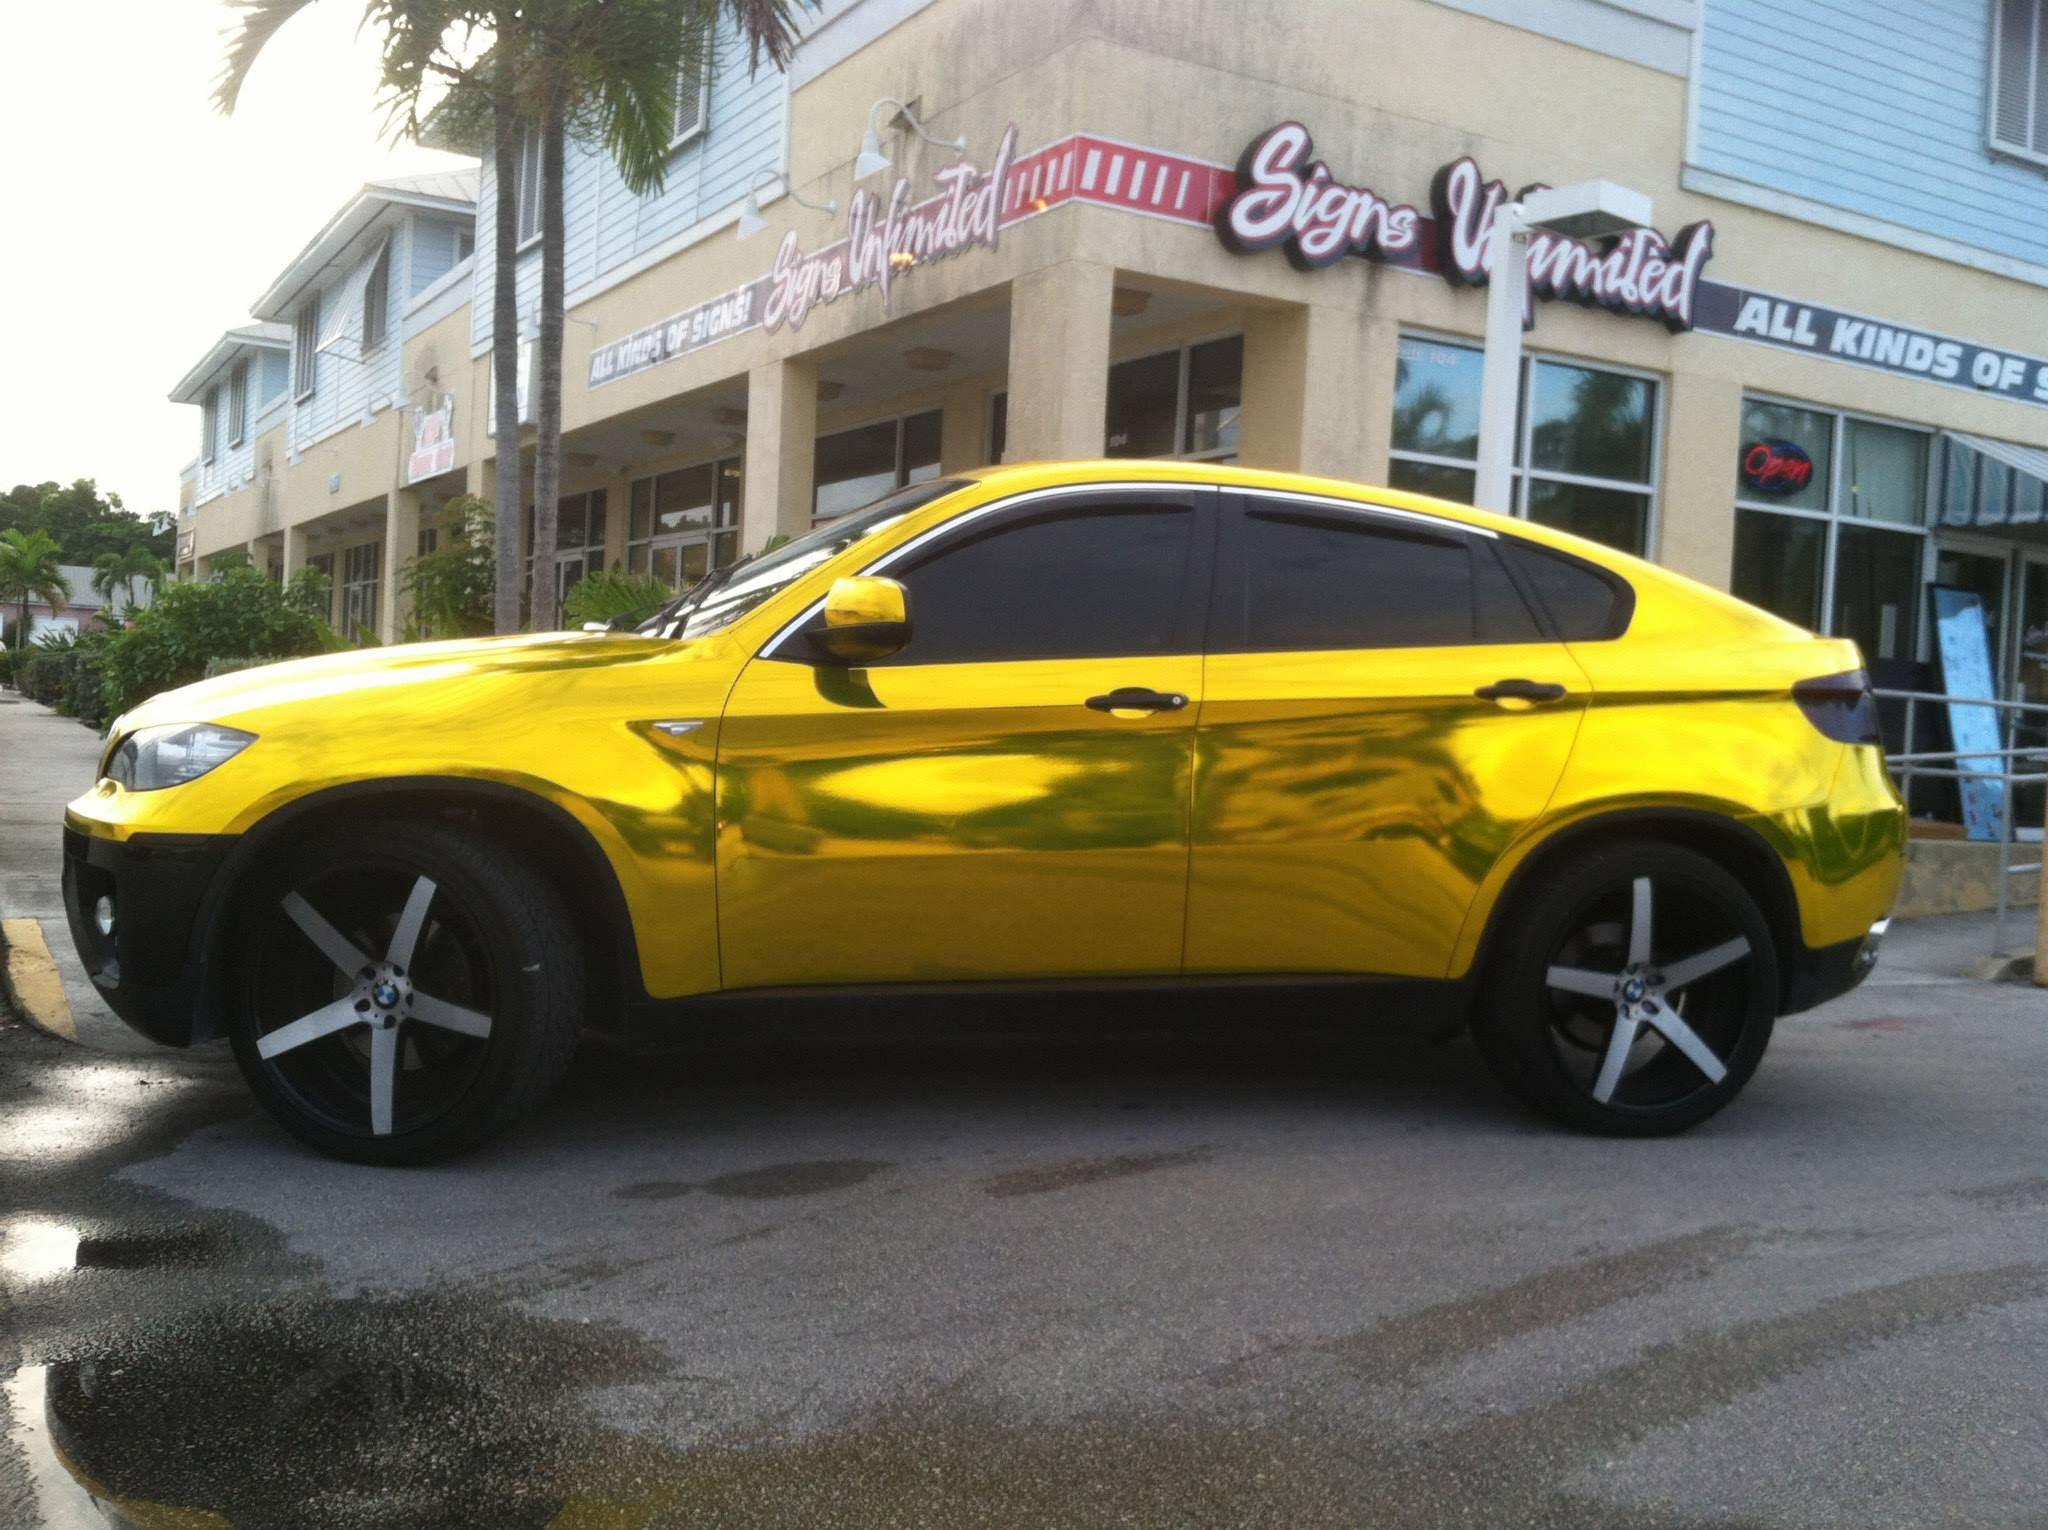 Bmw X6 Wrapped In Vvivid Gold Chrome By Signs Unlimited In Fl